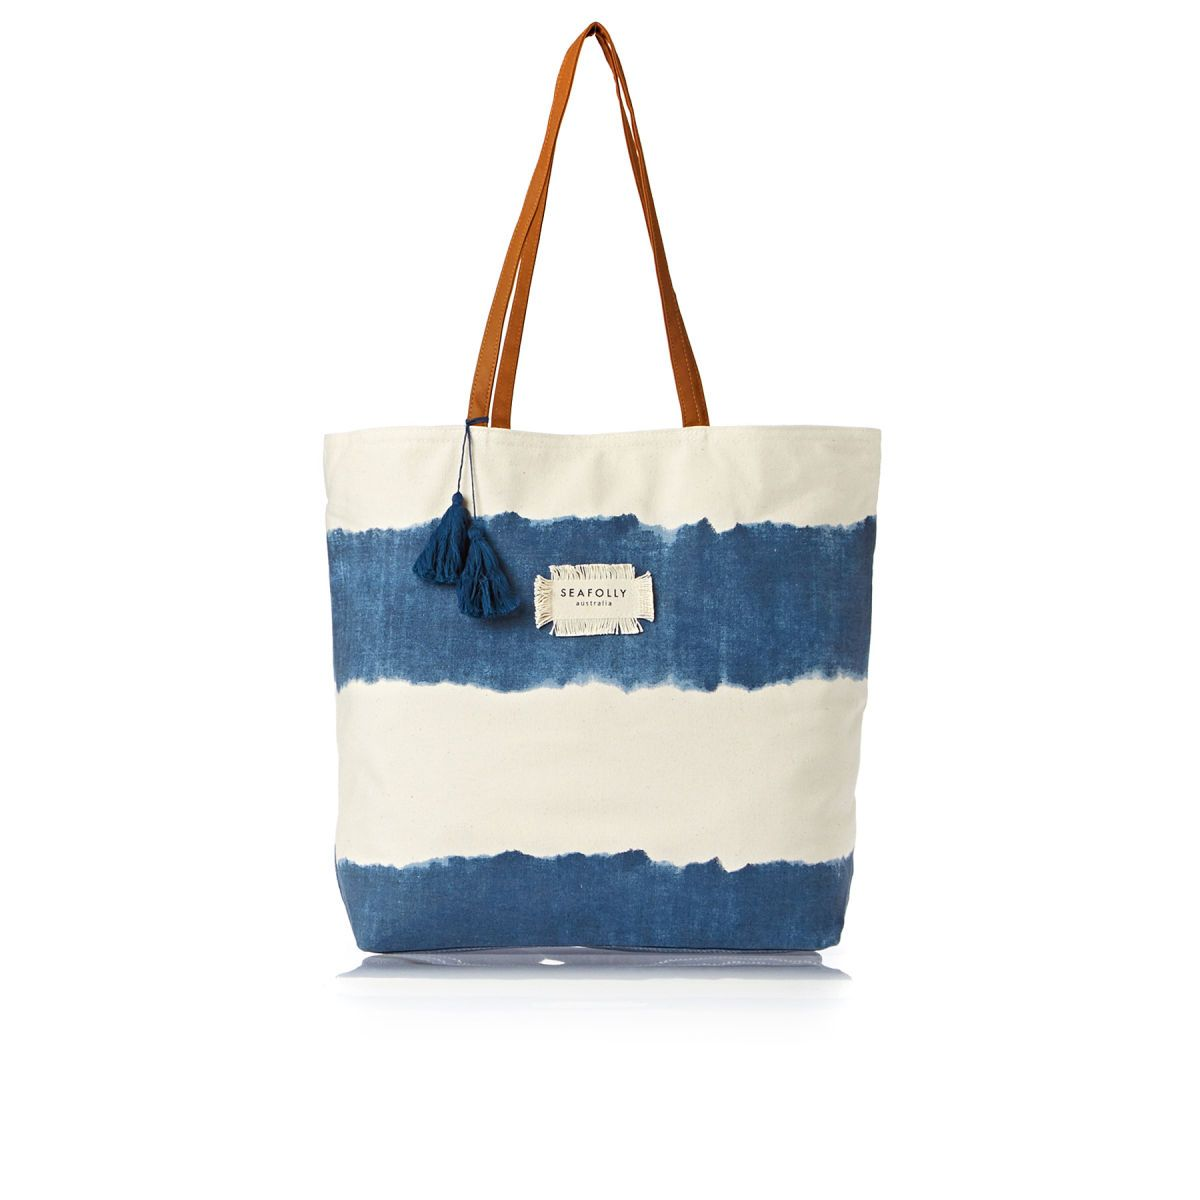 Seafolly Indian Summer Tote Beach Bag - Denim | vacation | Pinterest